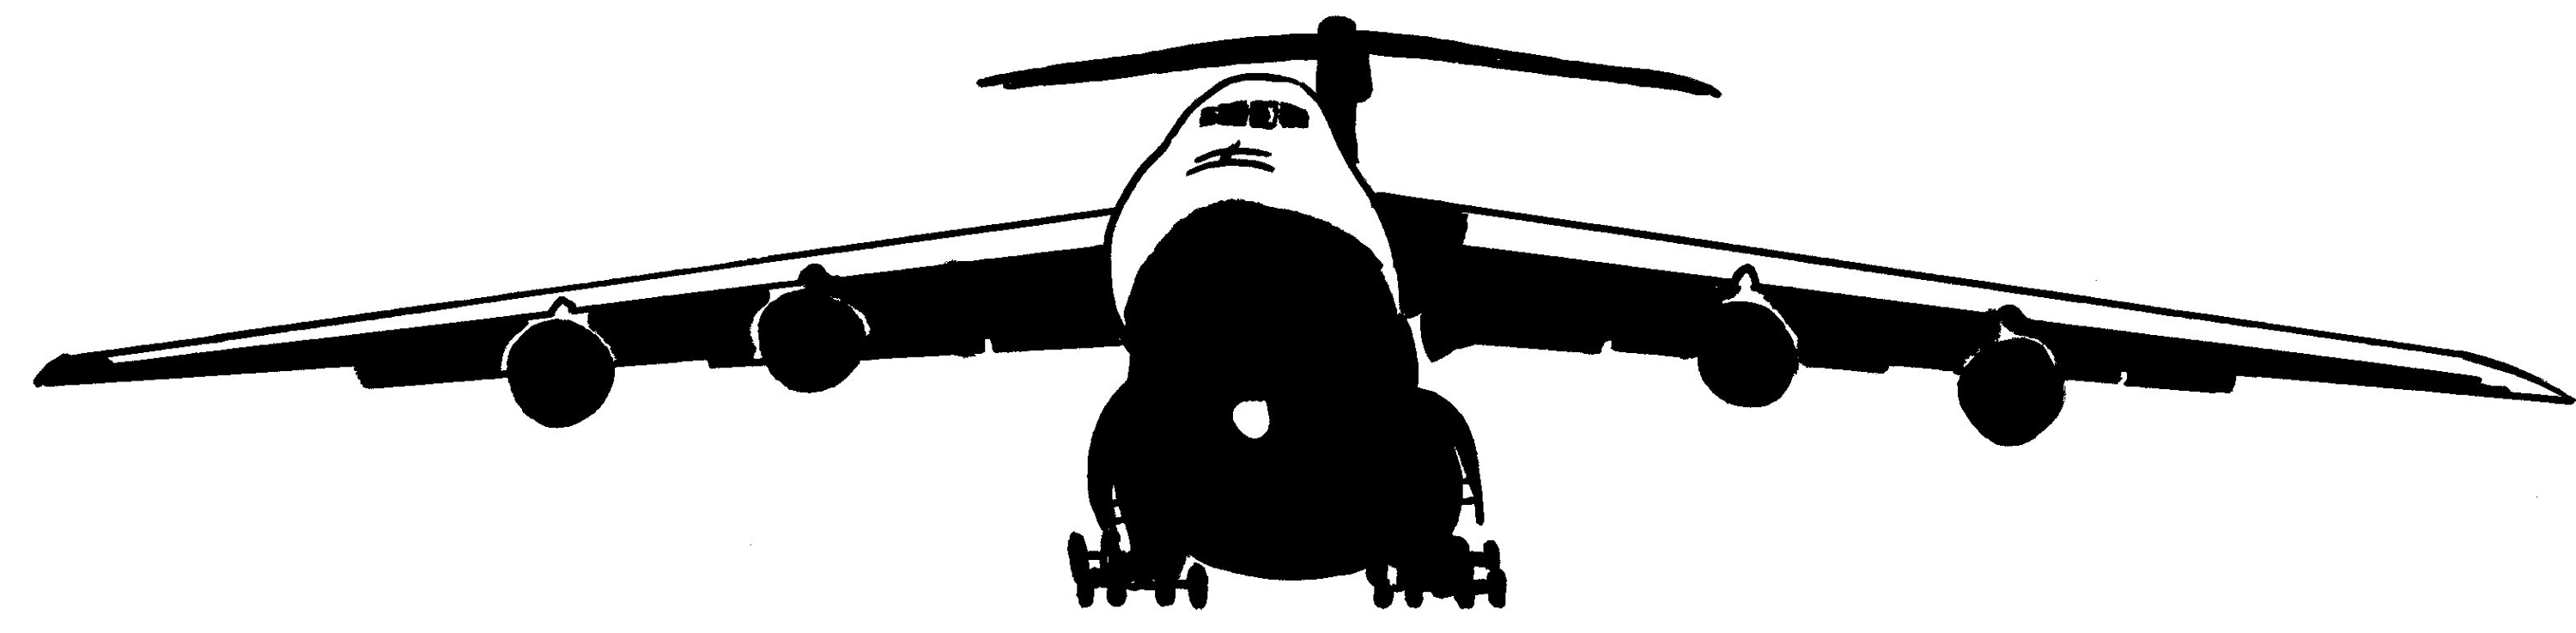 Airfoce airplane clipart image transparent Free Air Force Clipart, Download Free Clip Art, Free Clip Art on ... image transparent